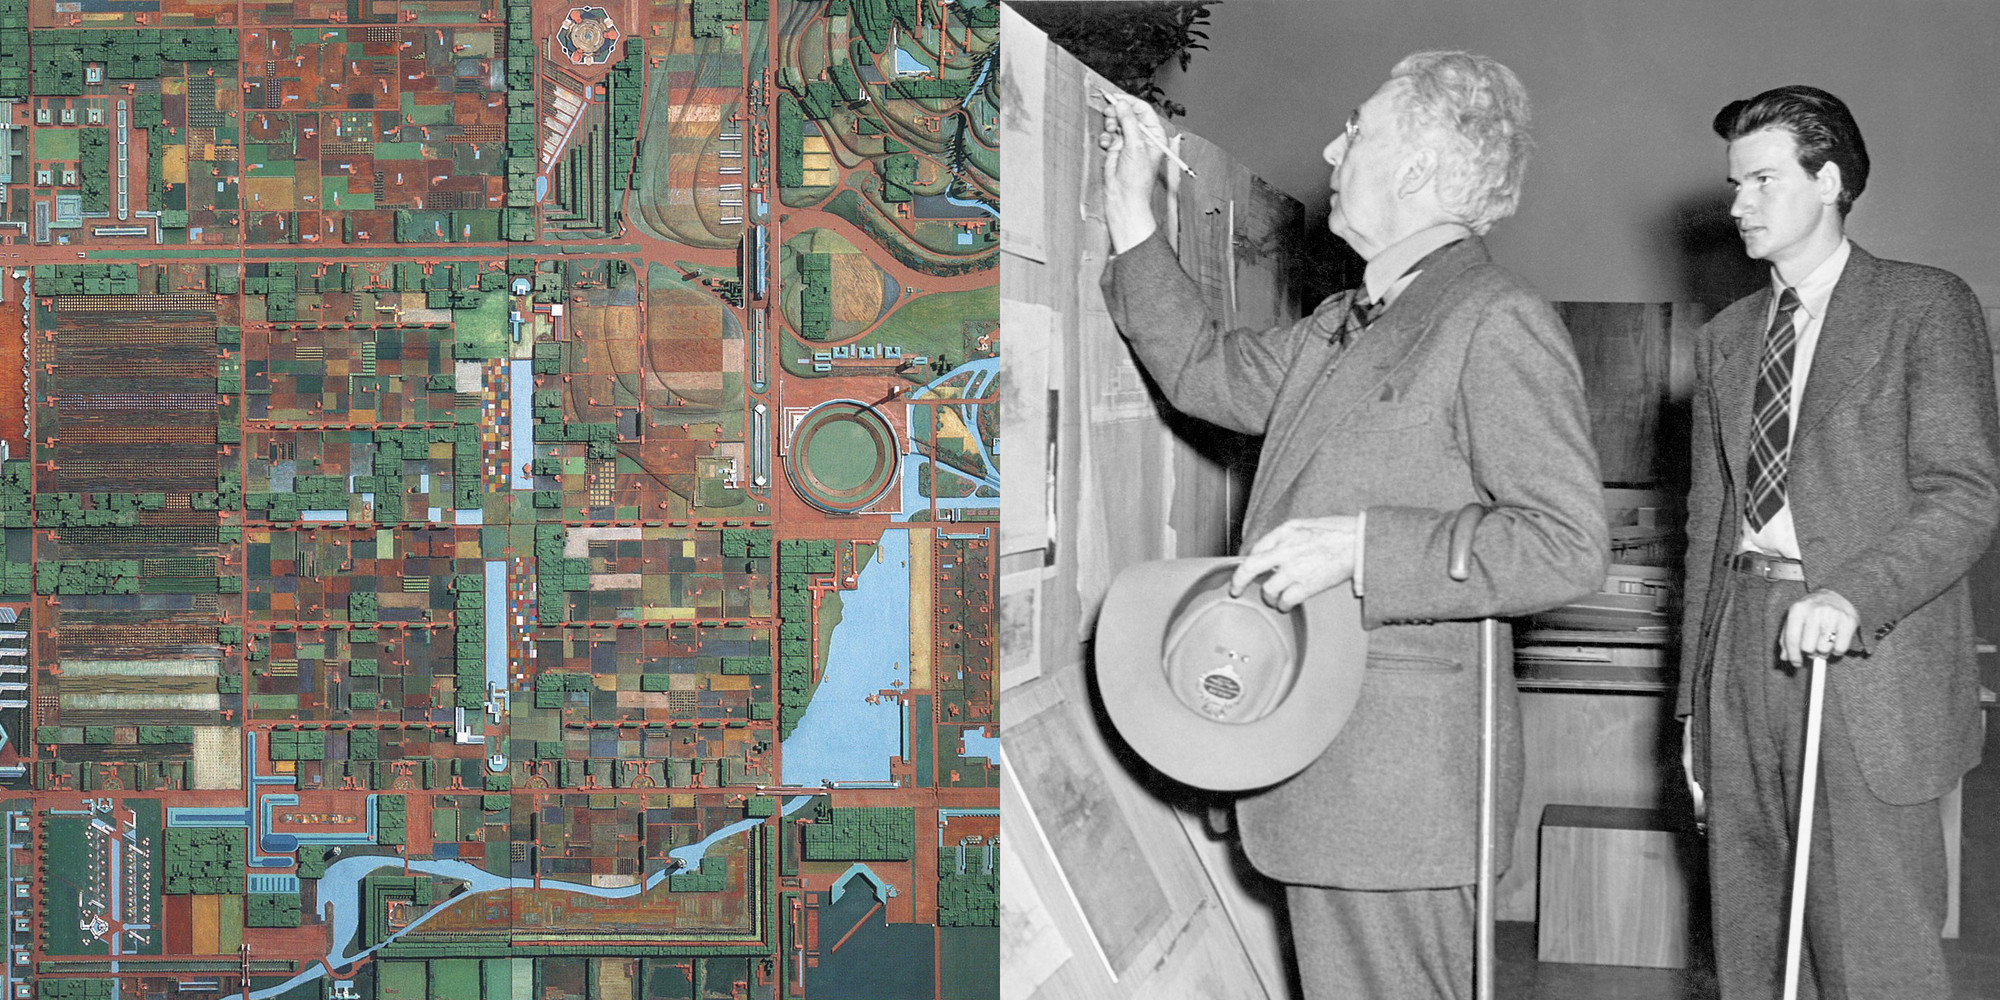 A Master Architect's Surprising Obsession, Frank Lloyd Wright. Broadacre City Project. 1934–35. Model: painted wood. The Frank Lloyd Wright Foundation Archives (The Museum of Modern Art | Avery Architectural & Fine Arts Library, Columbia University, New York); Frank Lloyd Wright and Eugene Masselink at the exhibition Frank Lloyd Wright, American Architect. November 13, 1940–January 5, 1941. The Museum of Modern Art Archives, New York. Photo by Soichi Sunami